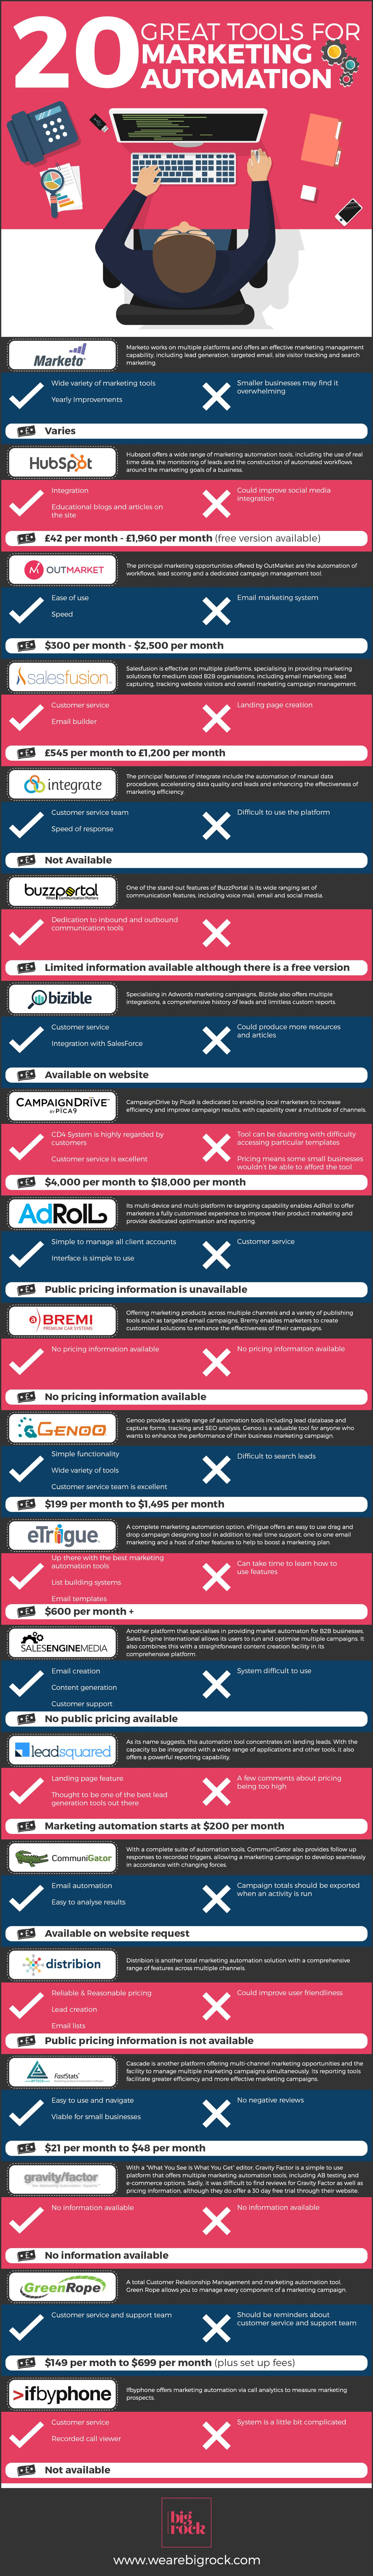 Marketing Automation Tools Infographic